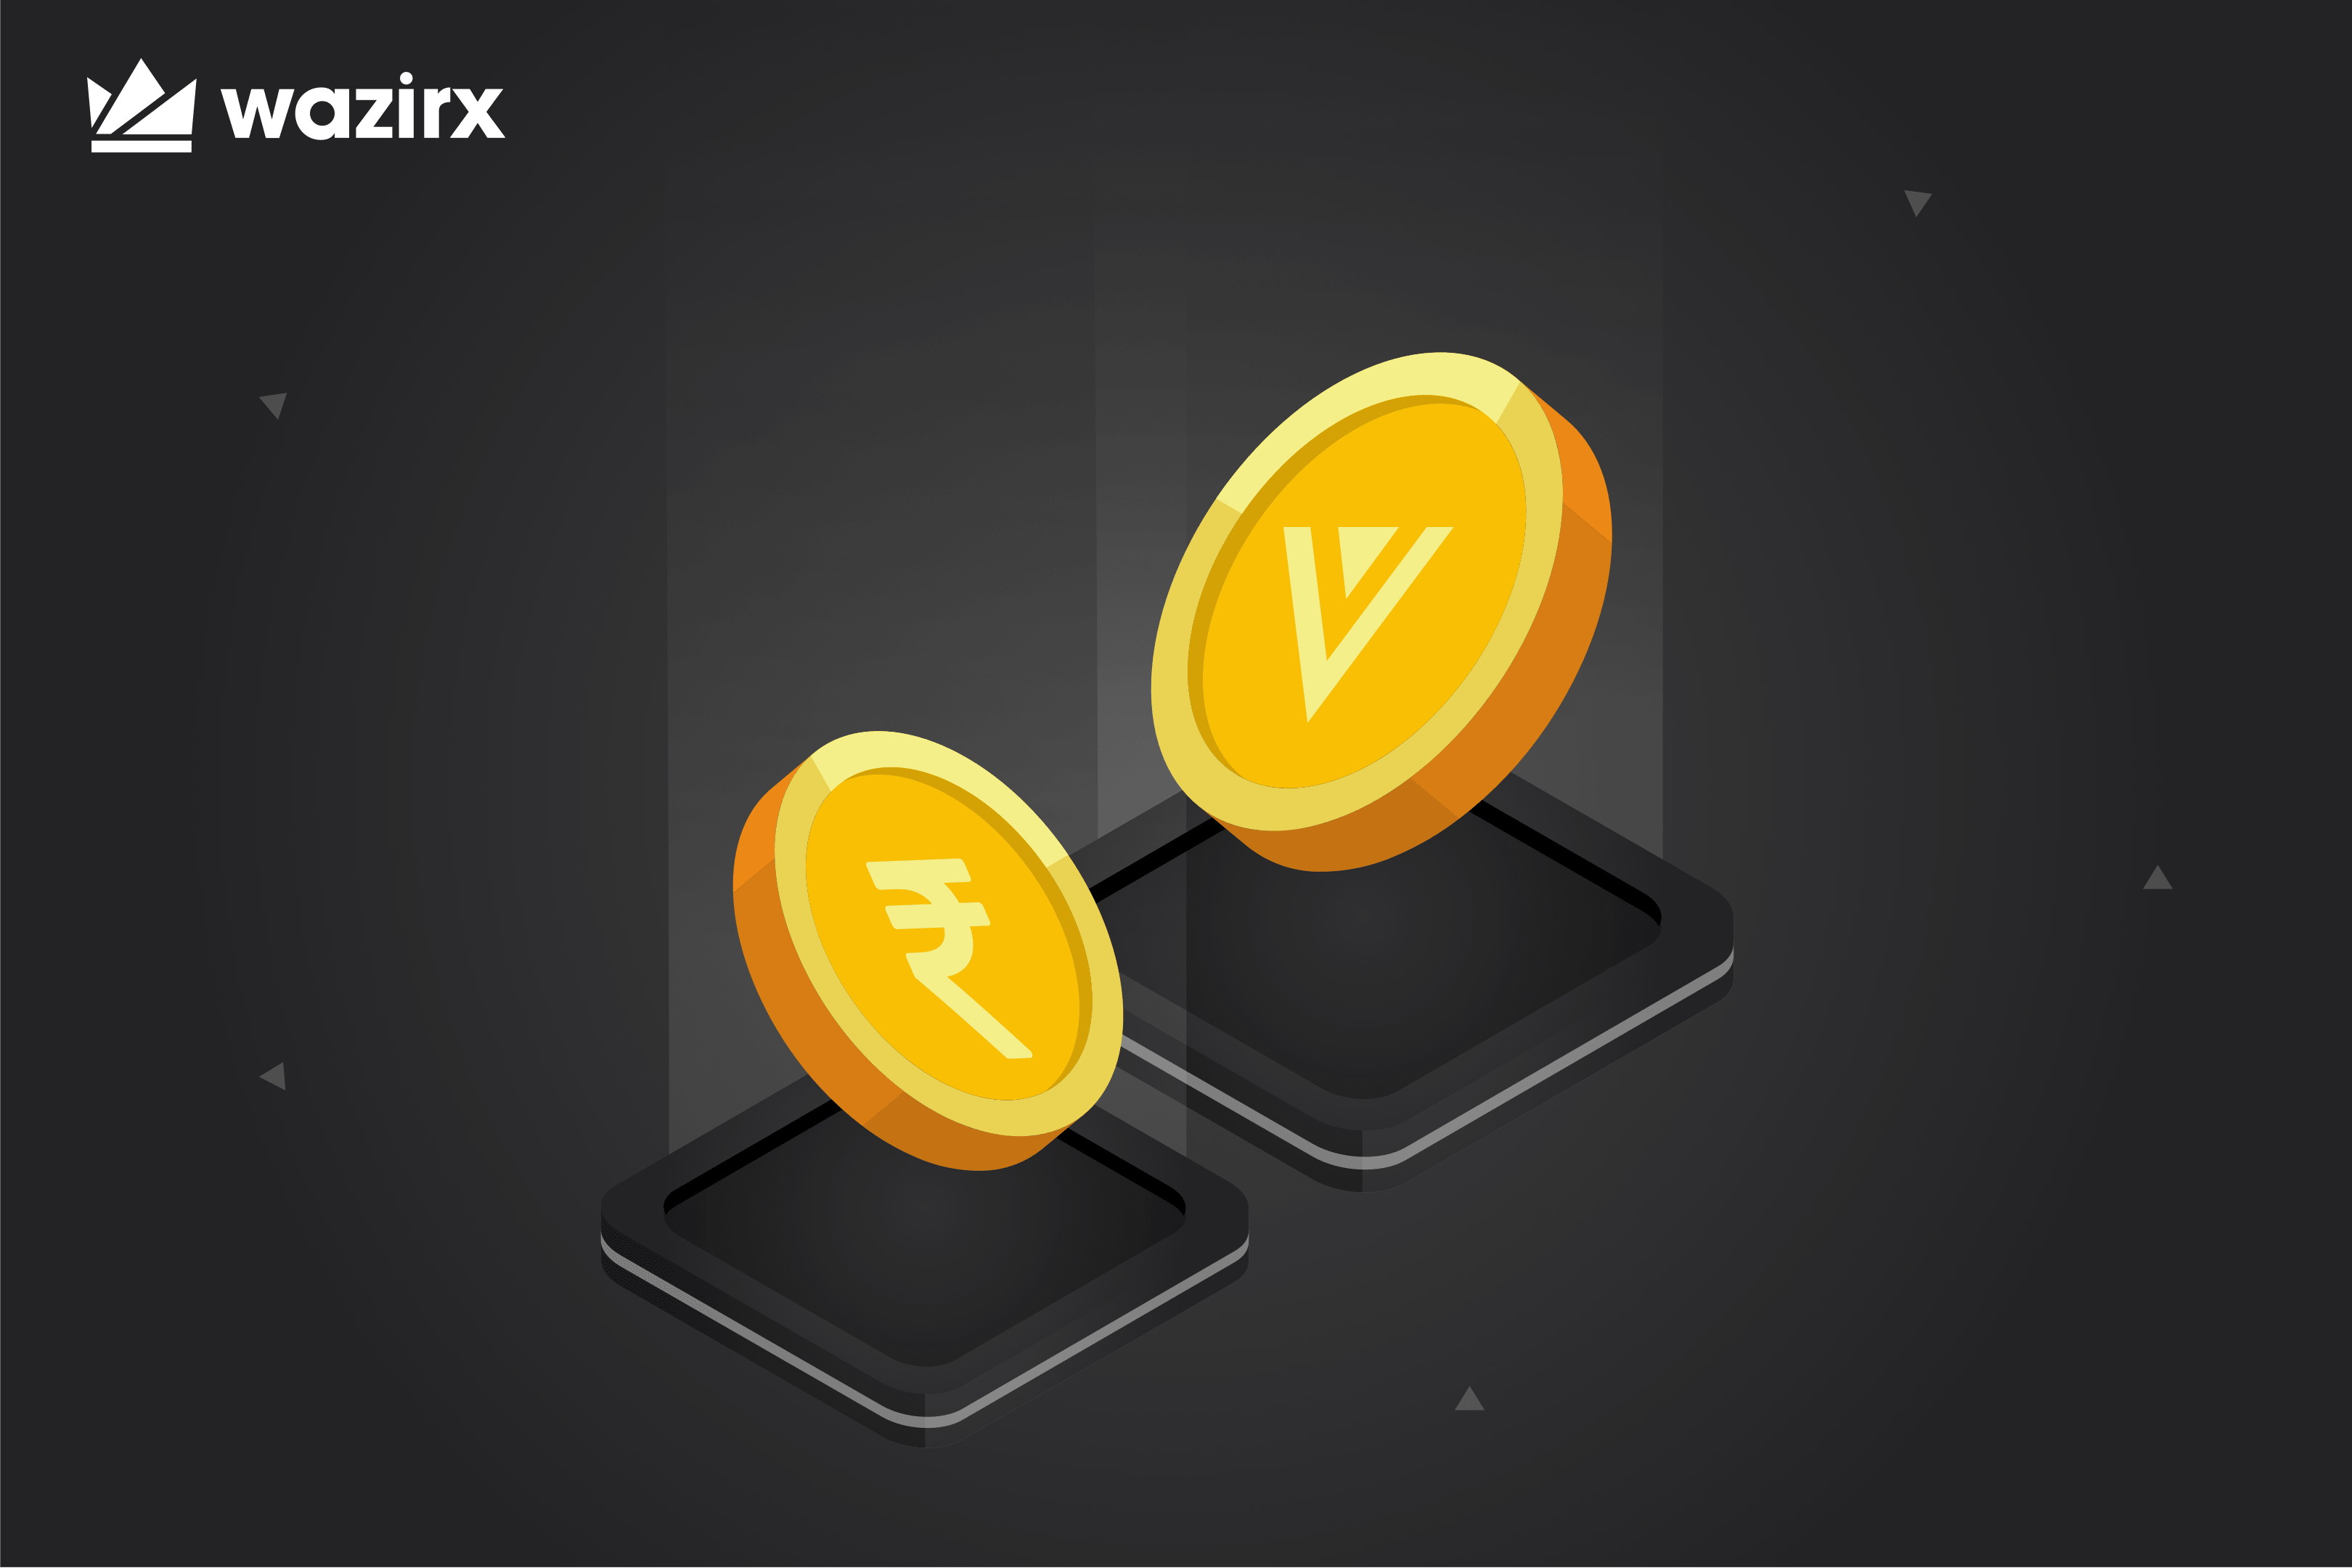 XVG/INR trading is live on WazirX